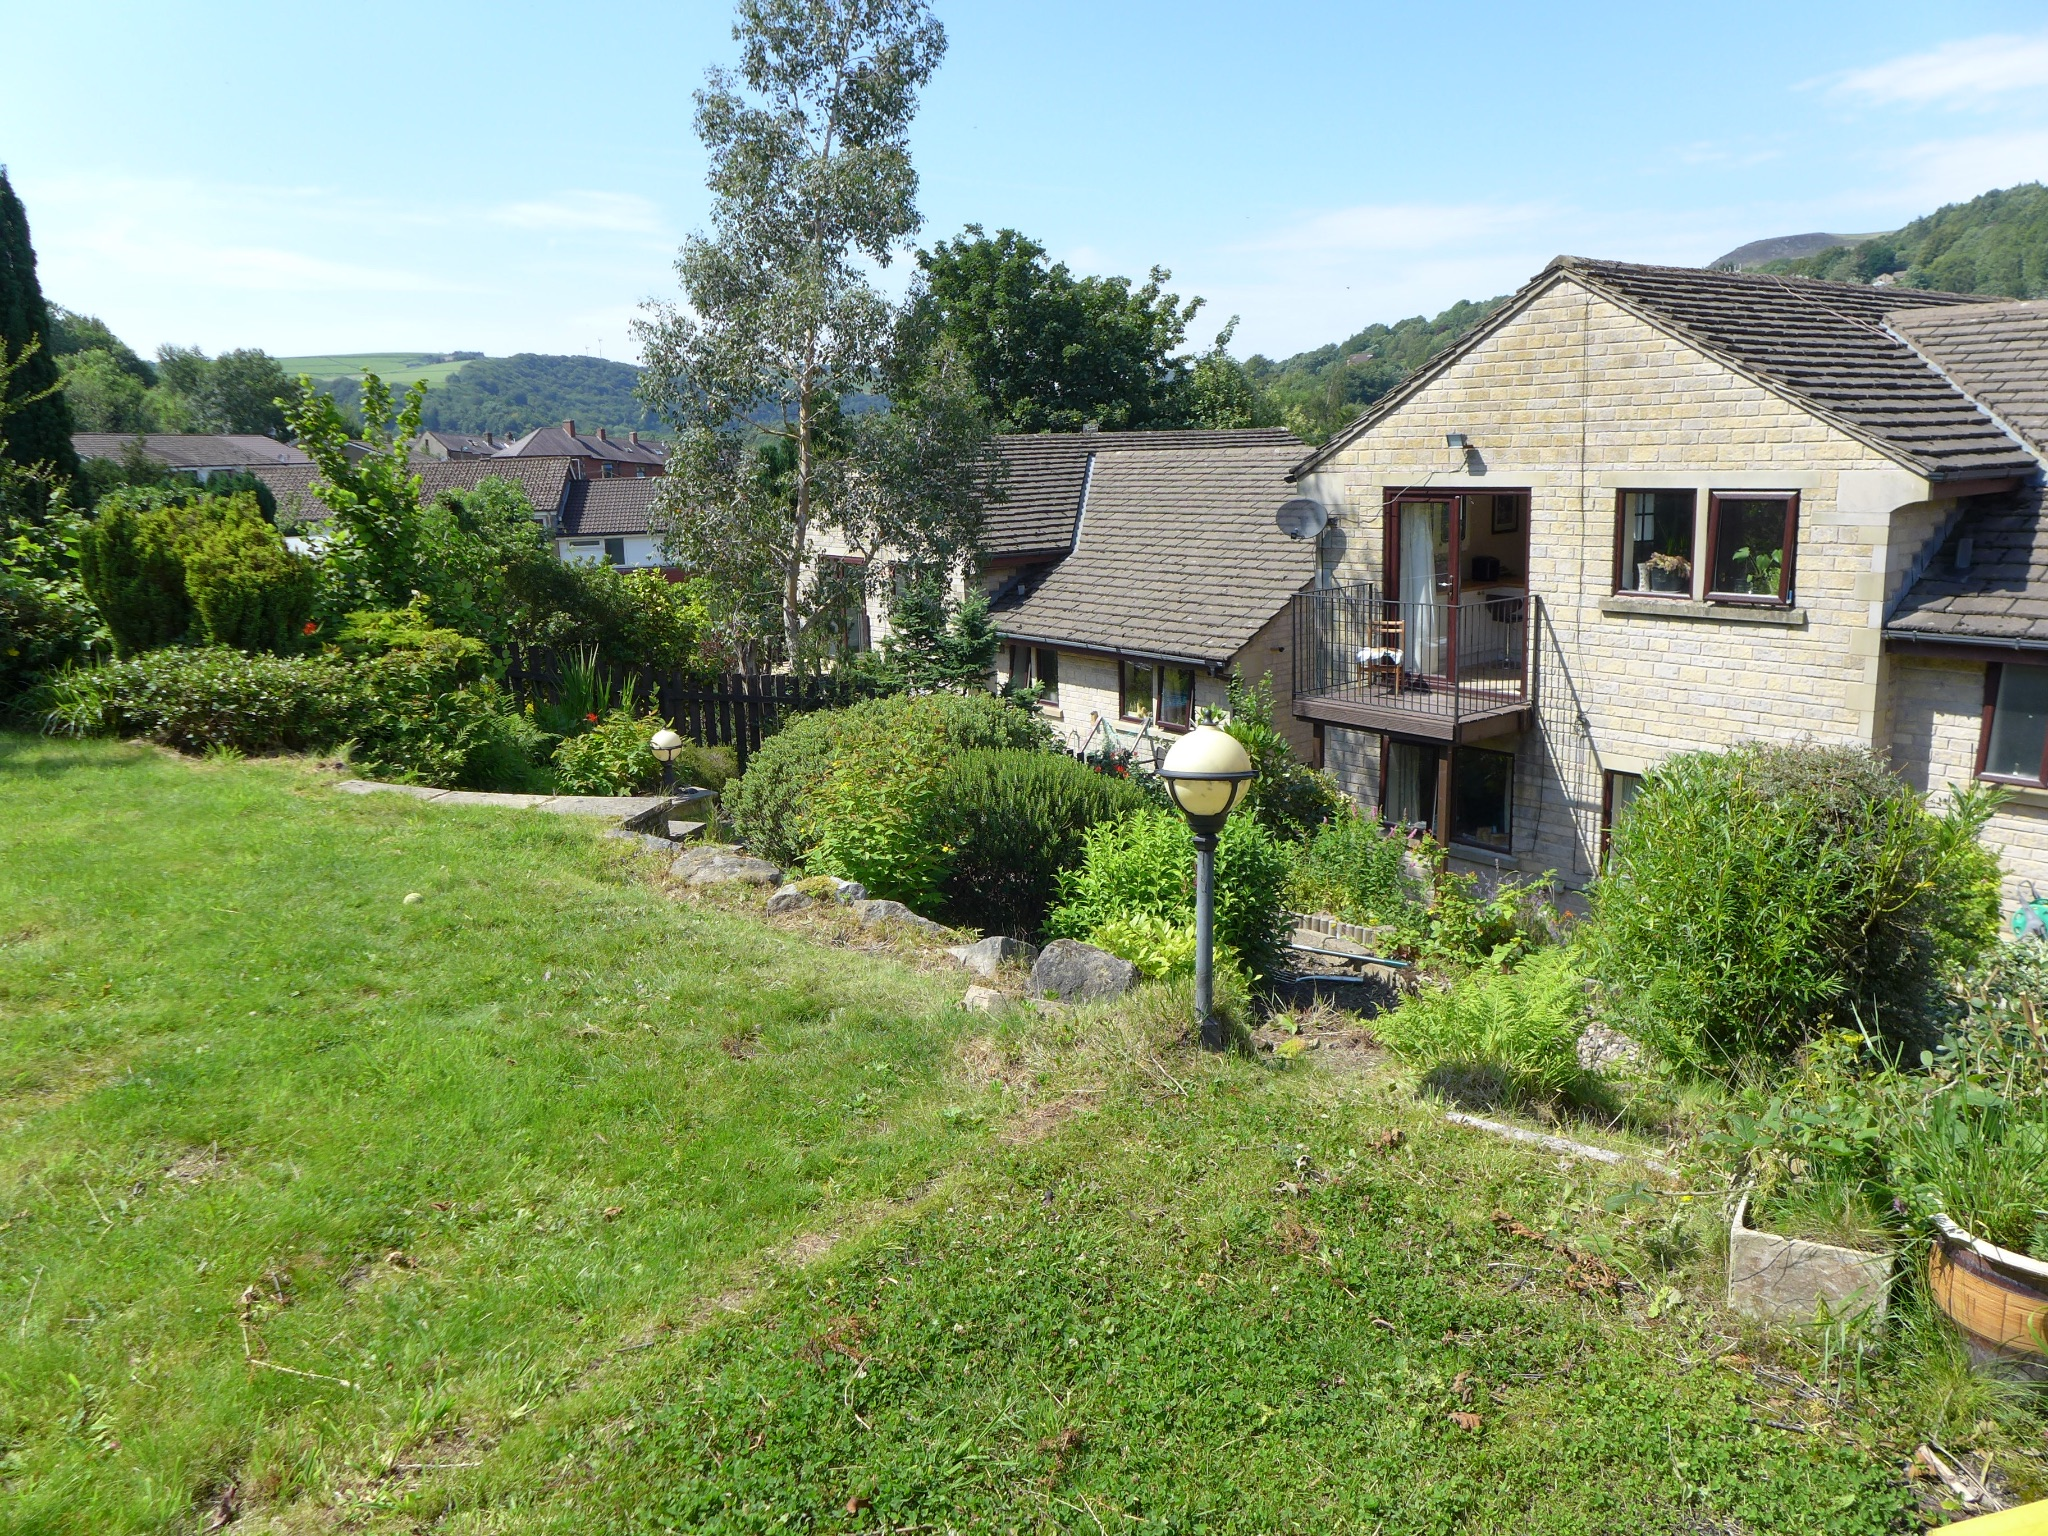 4 bedroom detached house For Sale in Todmorden - Photograph 17.